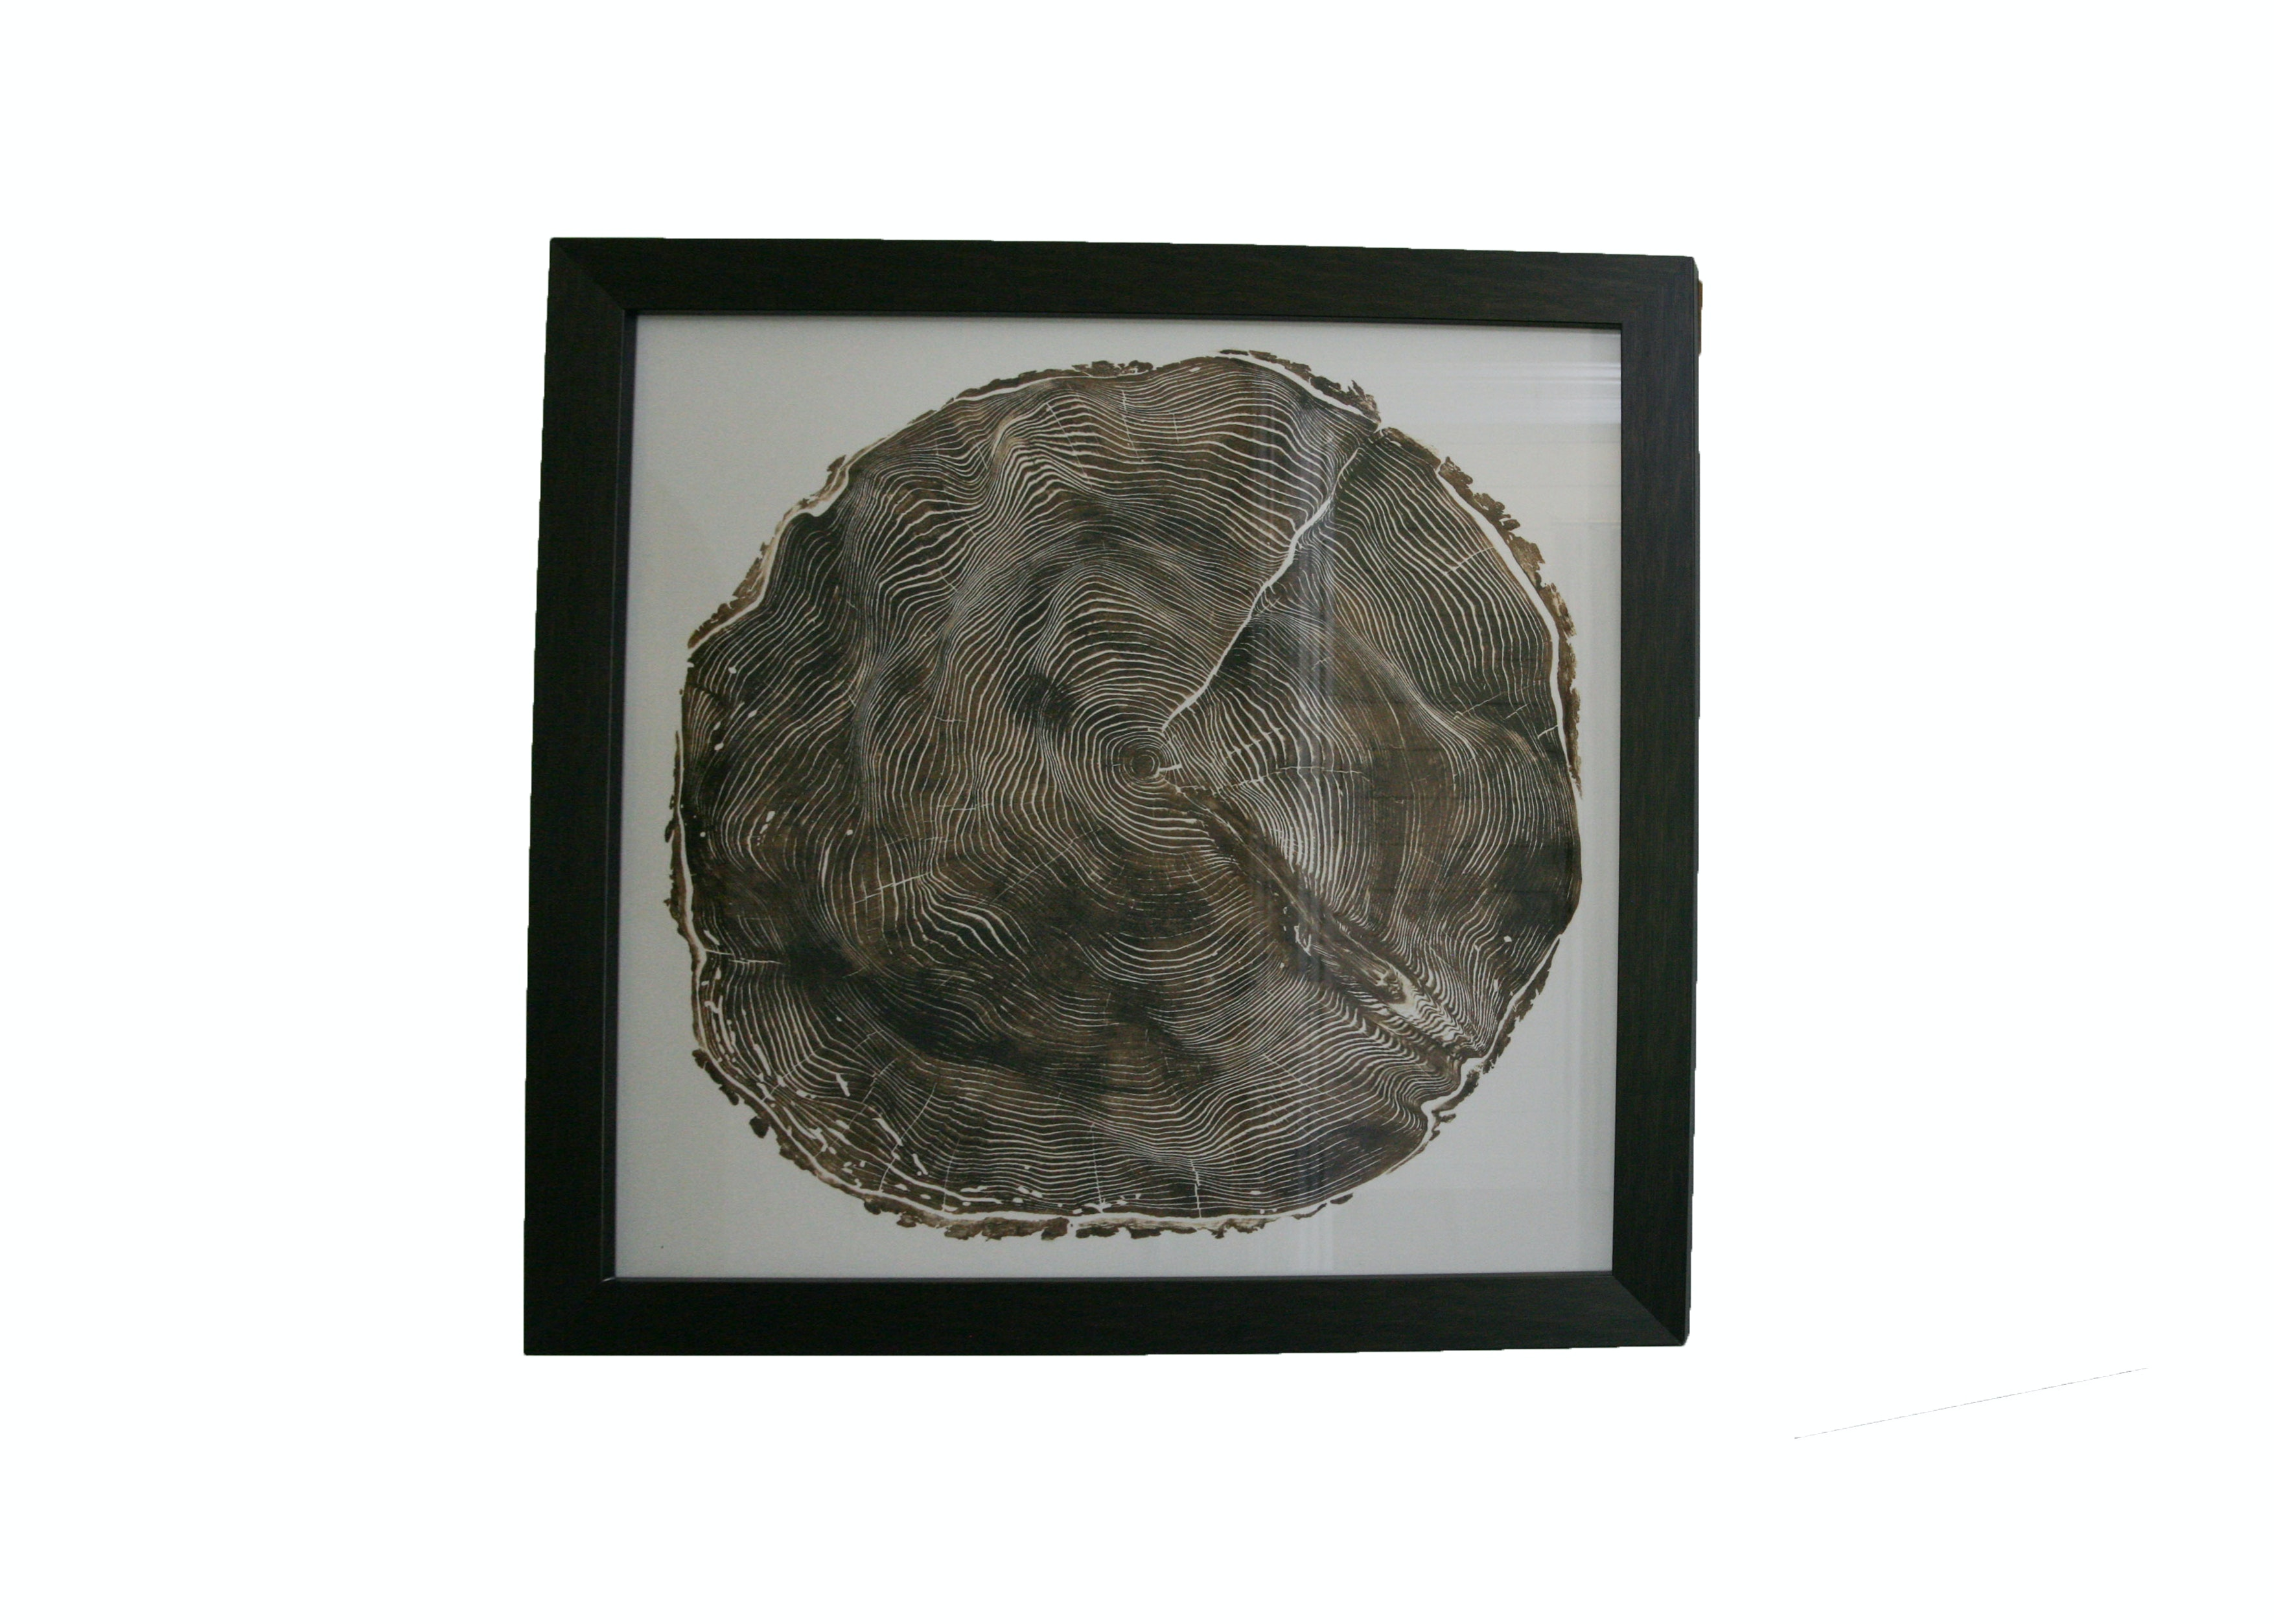 Framed Print After Bryan Nash Gill Quot Woodcut Quot Ebth